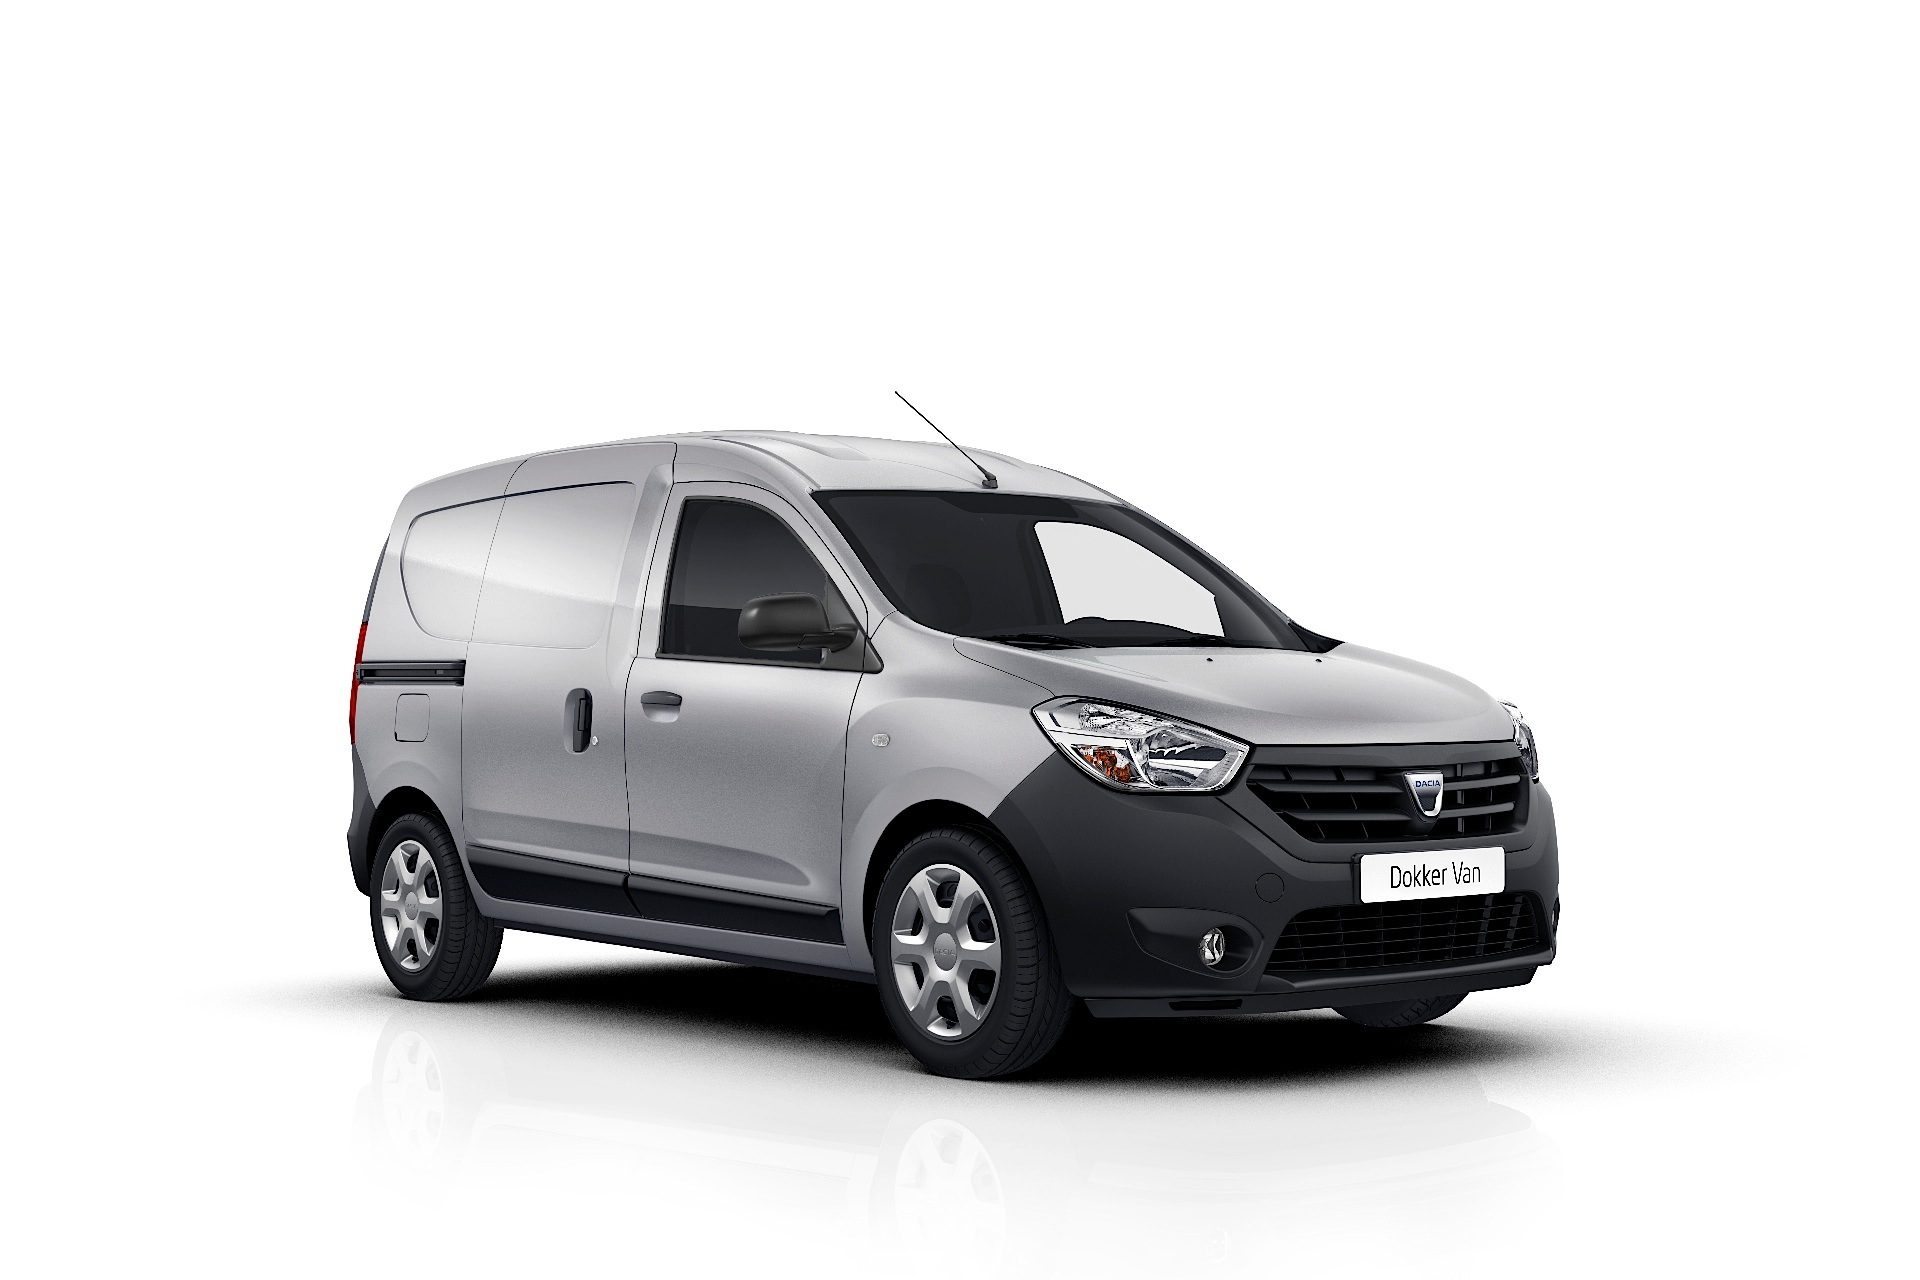 dacia dokker van specs photos 2012 2013 2014 2015 2016 2017 2018 2019 autoevolution. Black Bedroom Furniture Sets. Home Design Ideas